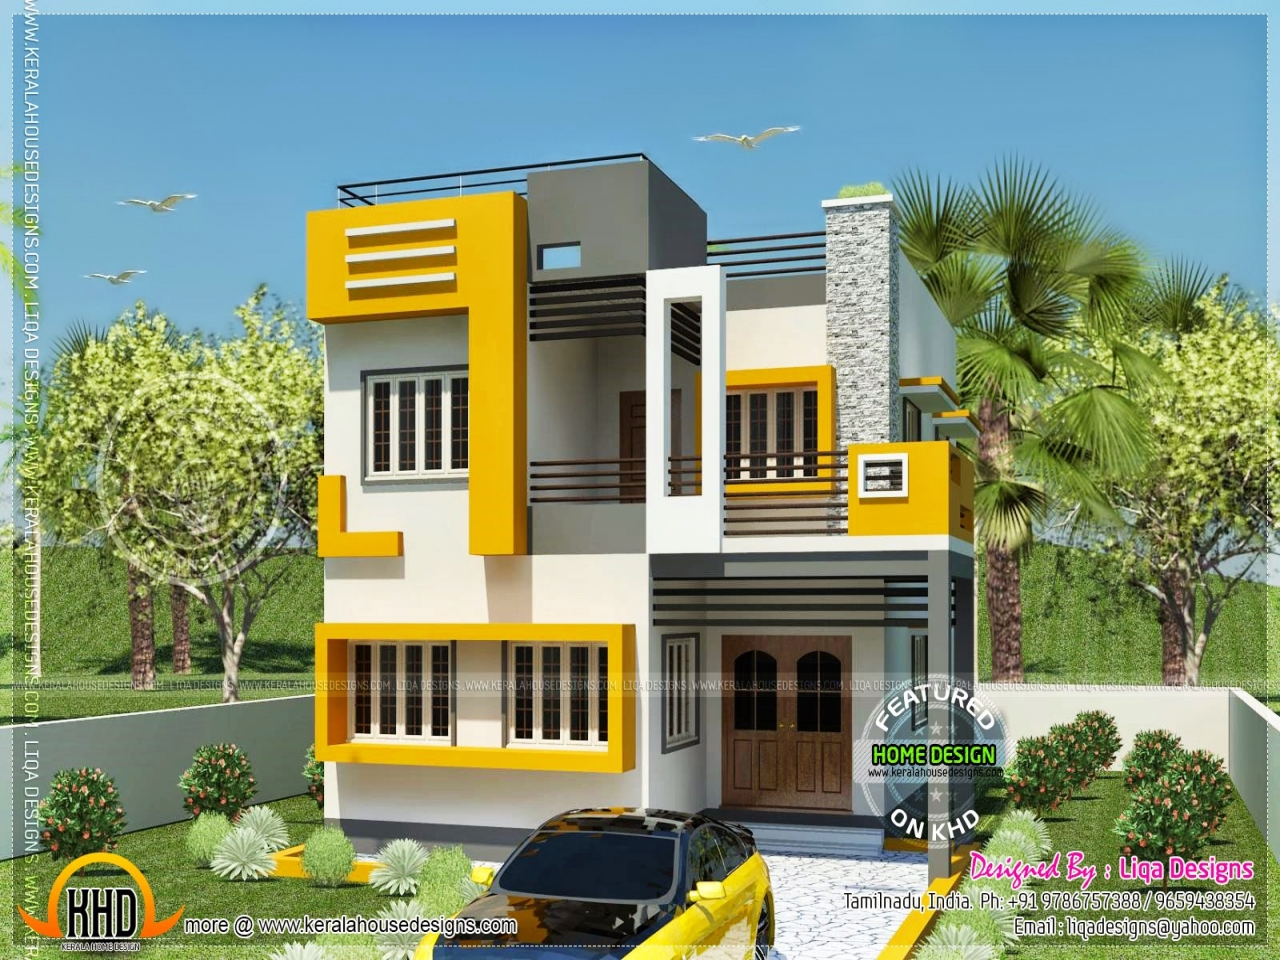 Tamil house modern style indian house plans bungalow for House designs indian style